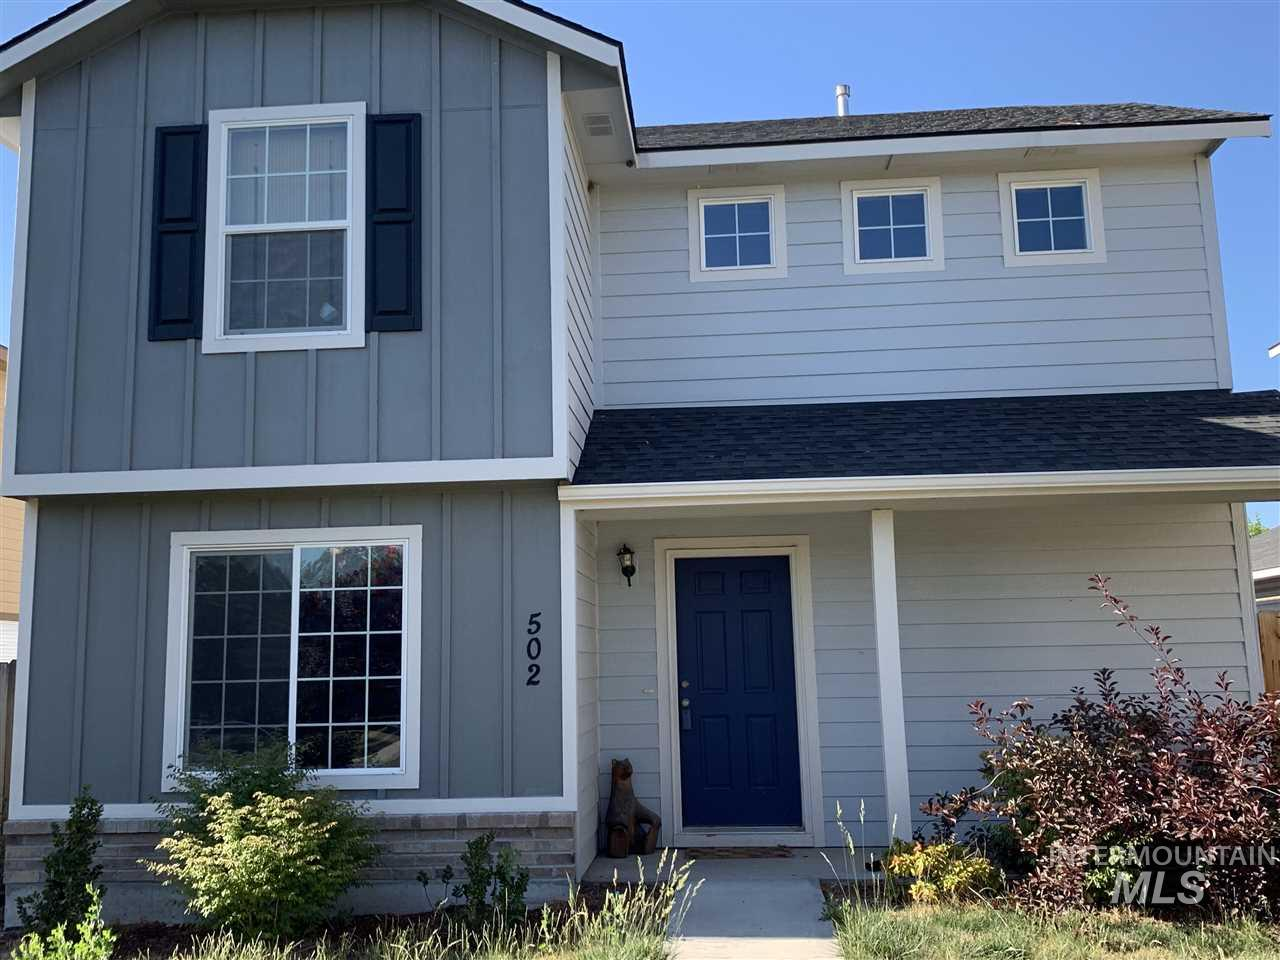 Lots of square footage for your dollar.  Close to shopping, schools, and entertainment.  New paint throughout most of the interior. Black appliances, cozy deck for entertaining, many new, stylish light fixtures.  Large great room for family gatherings.